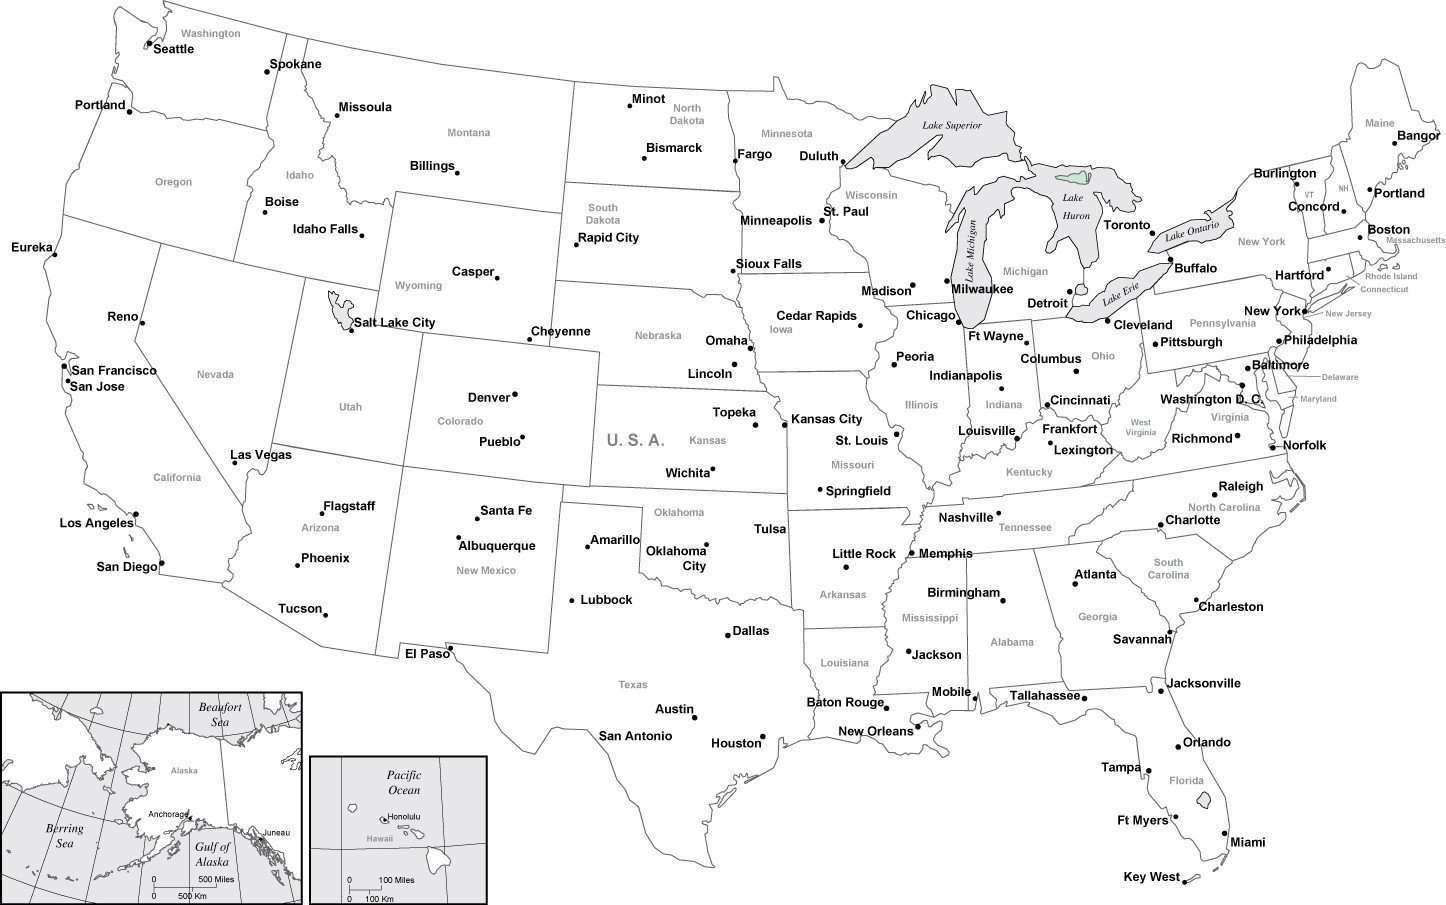 Black White Usa Map With Major Cities